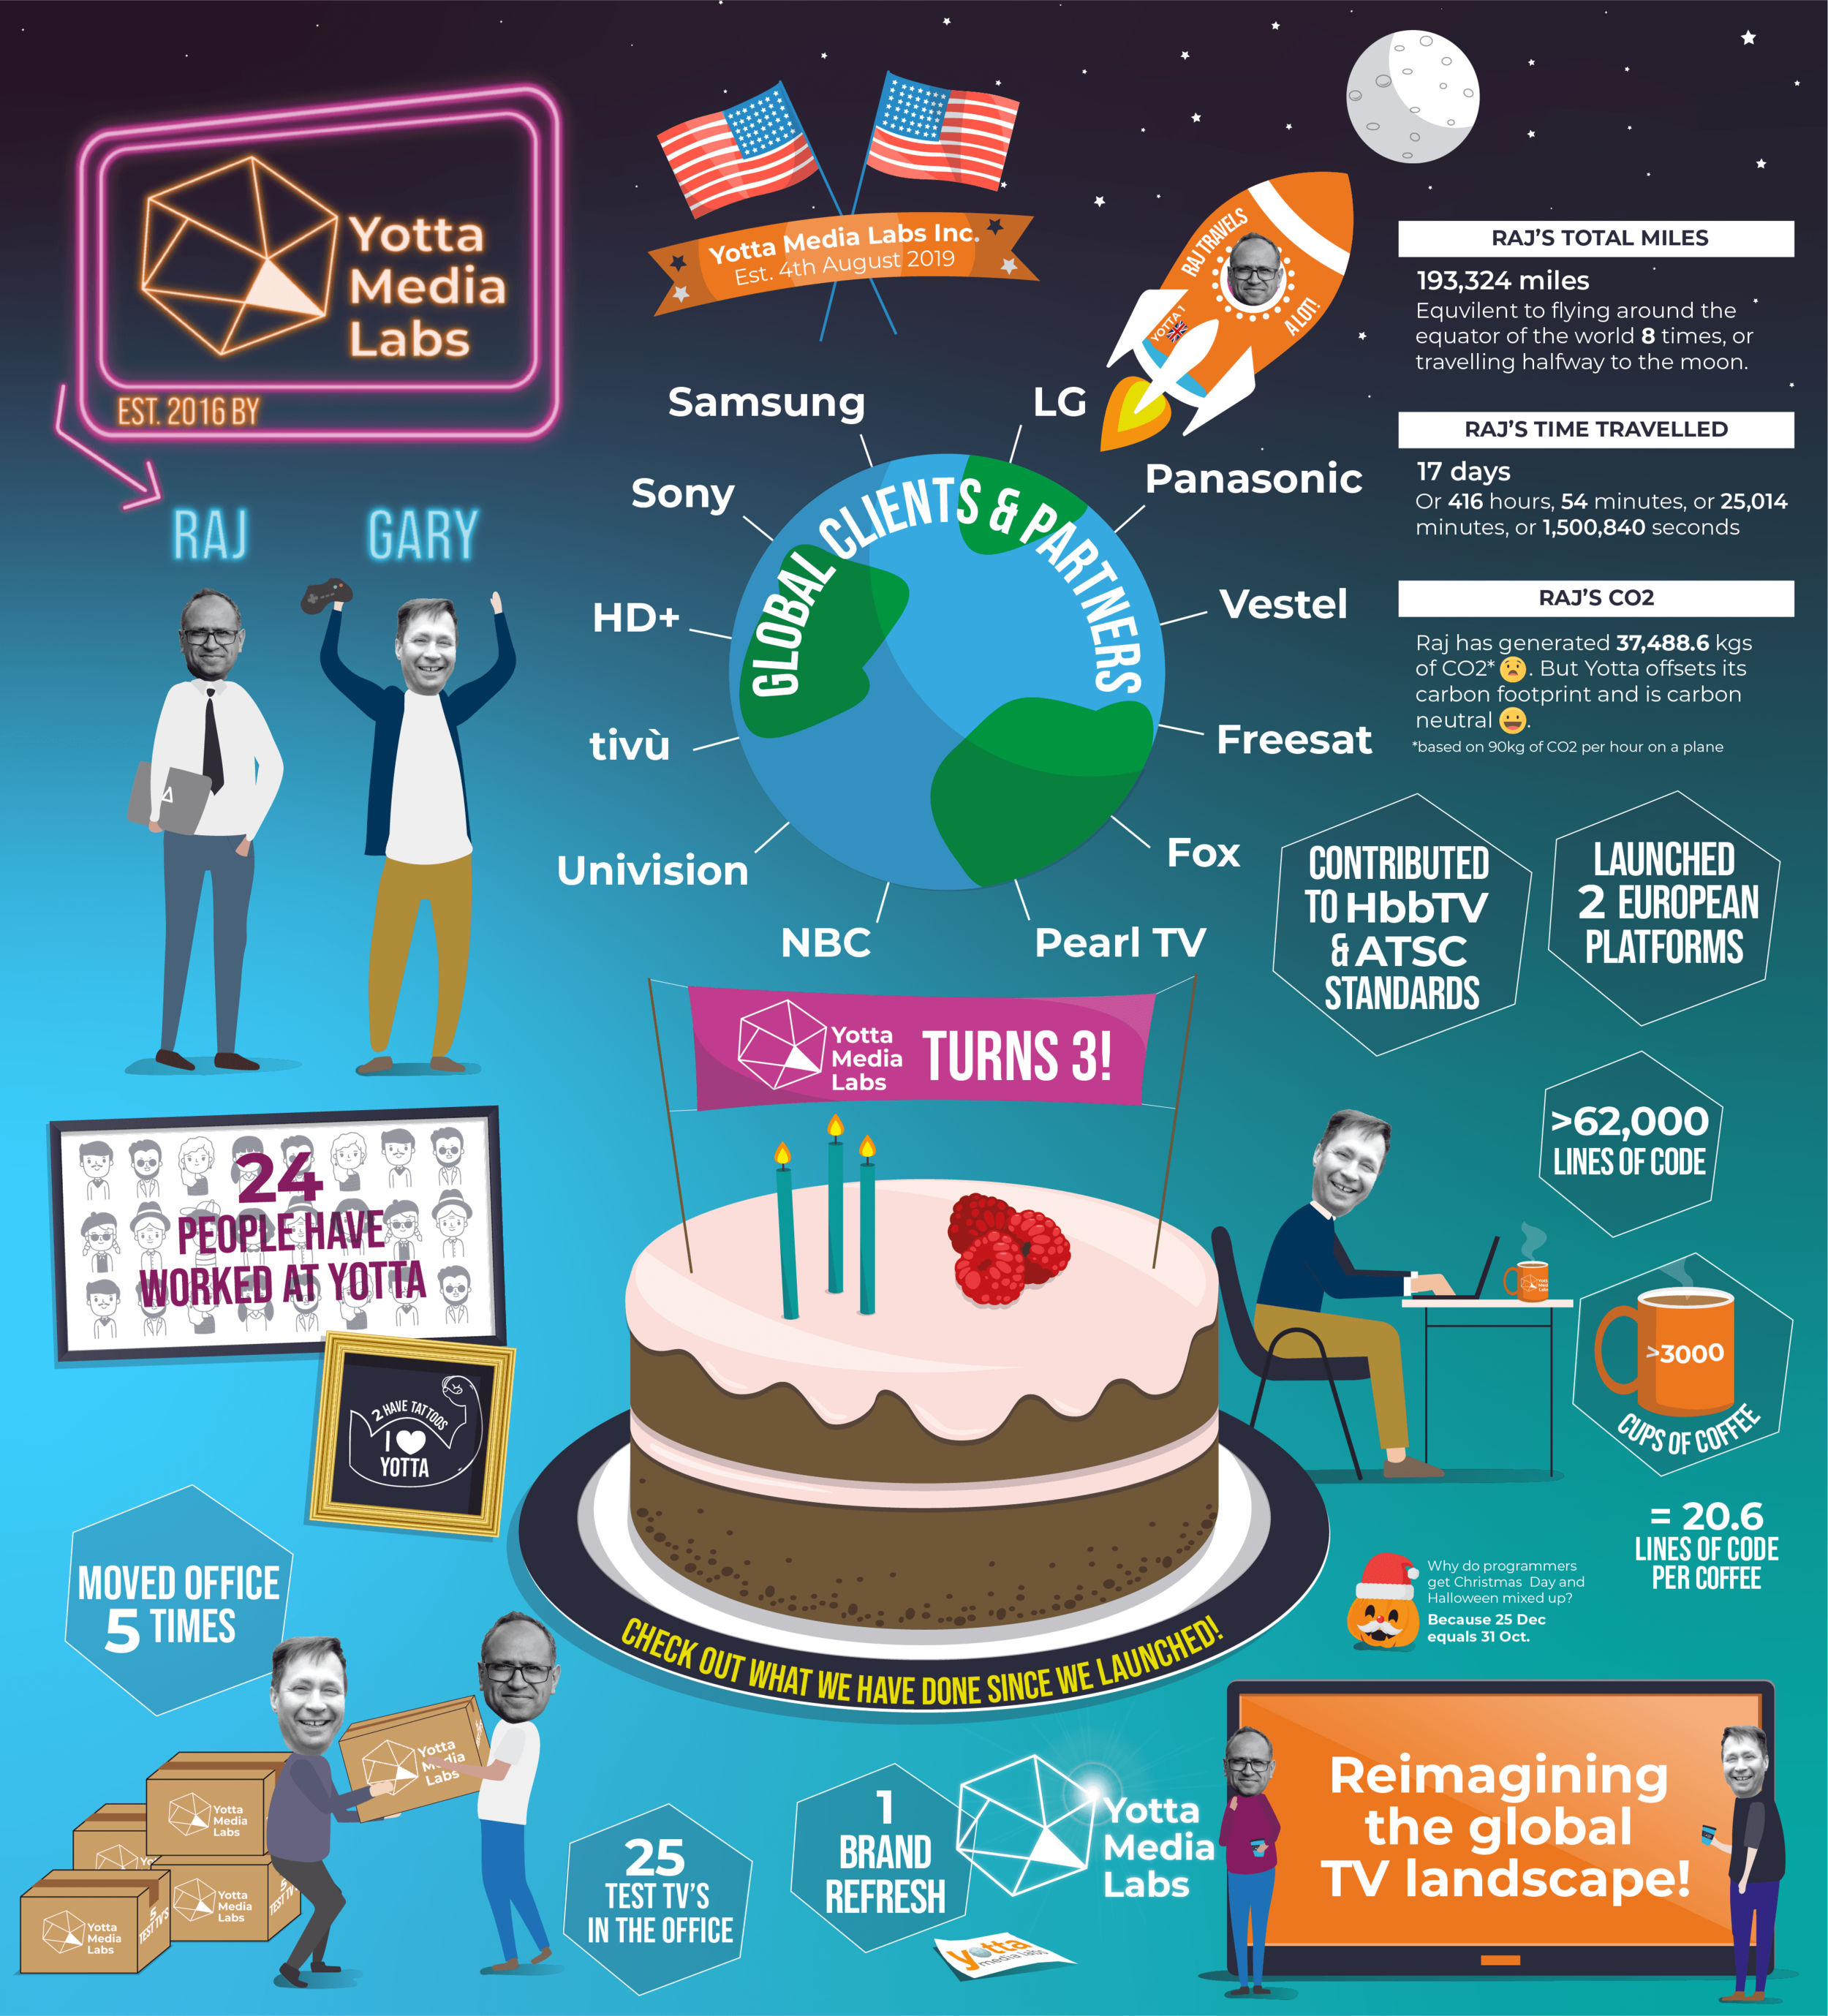 Yotta Media Labs 3rd Birthday infographic